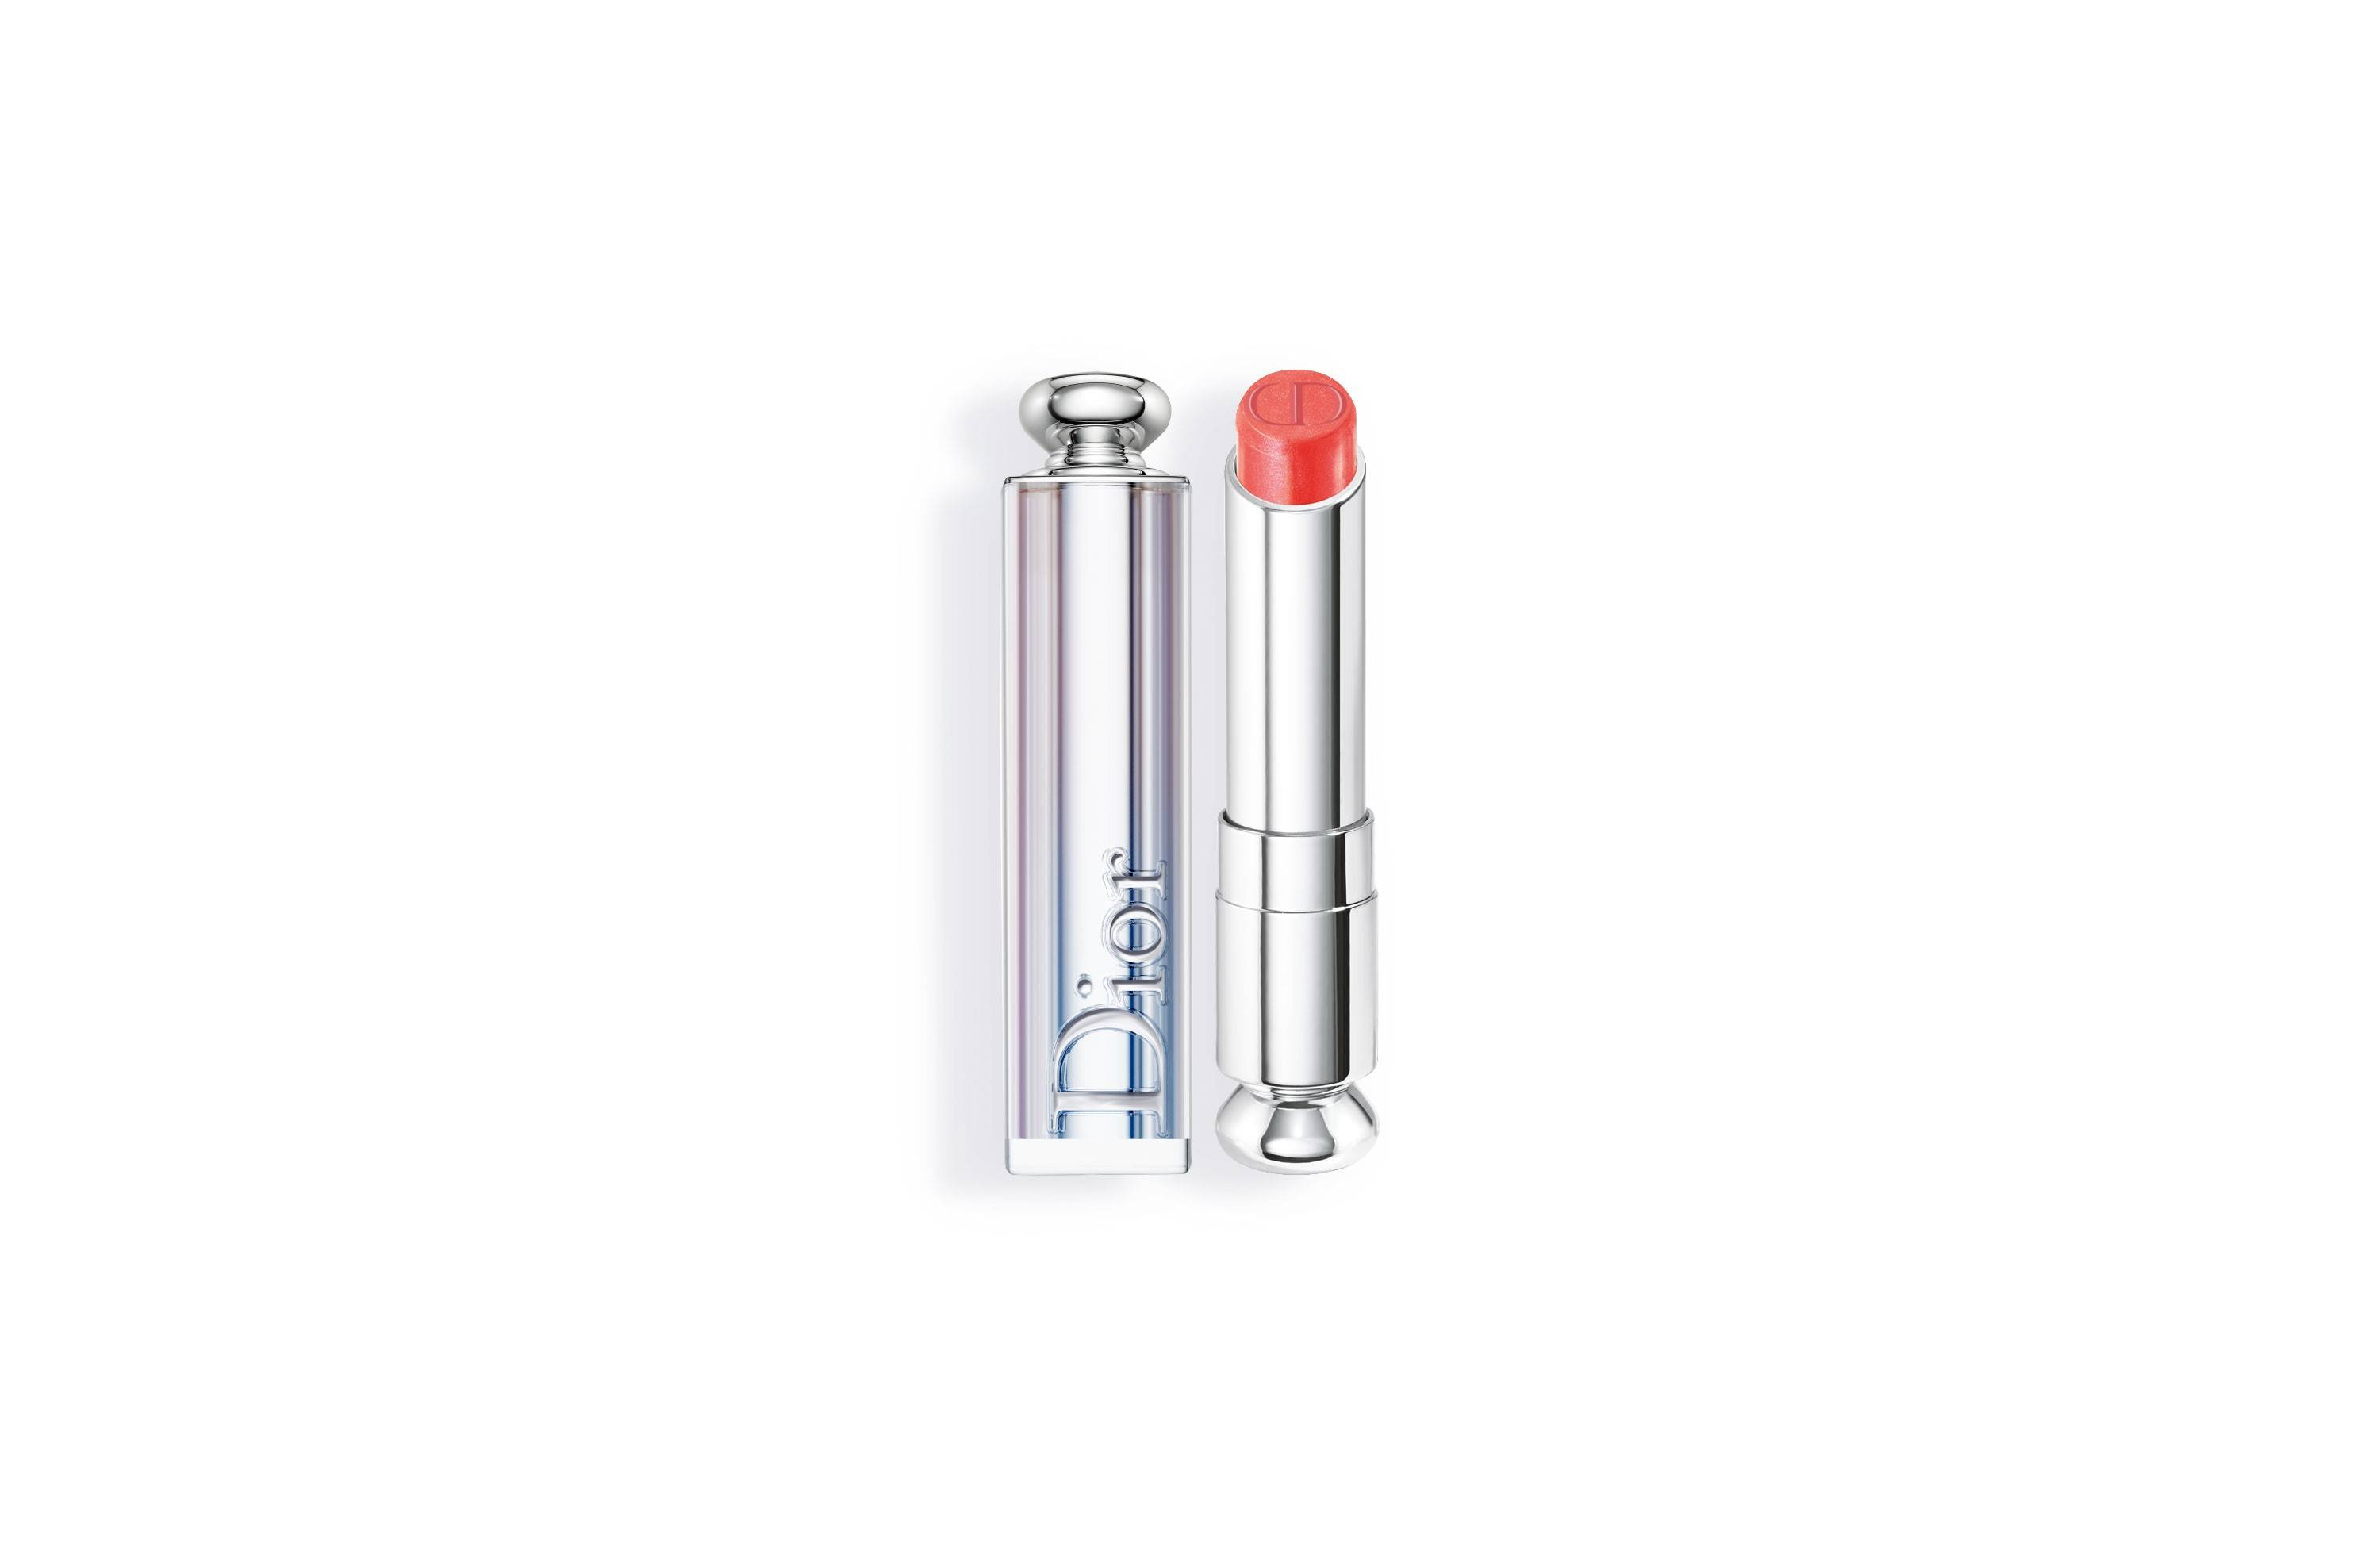 Christian Dior Addict Lipstick Rouge a levres Tribal 451-3,5g